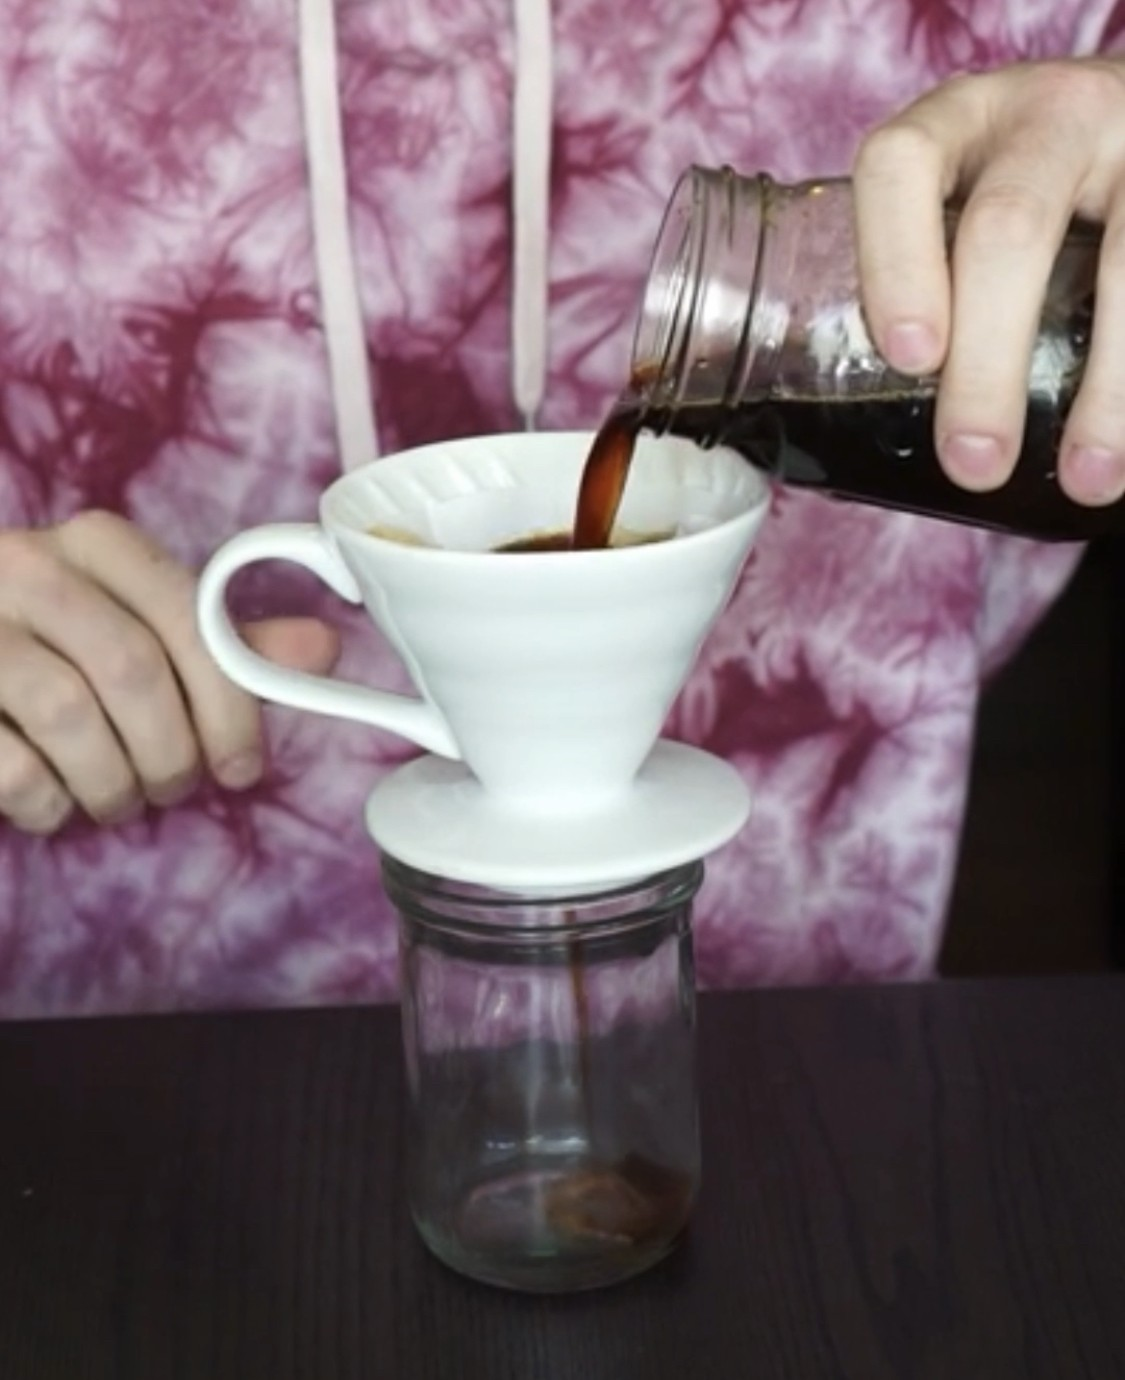 Coffee Extract at Home